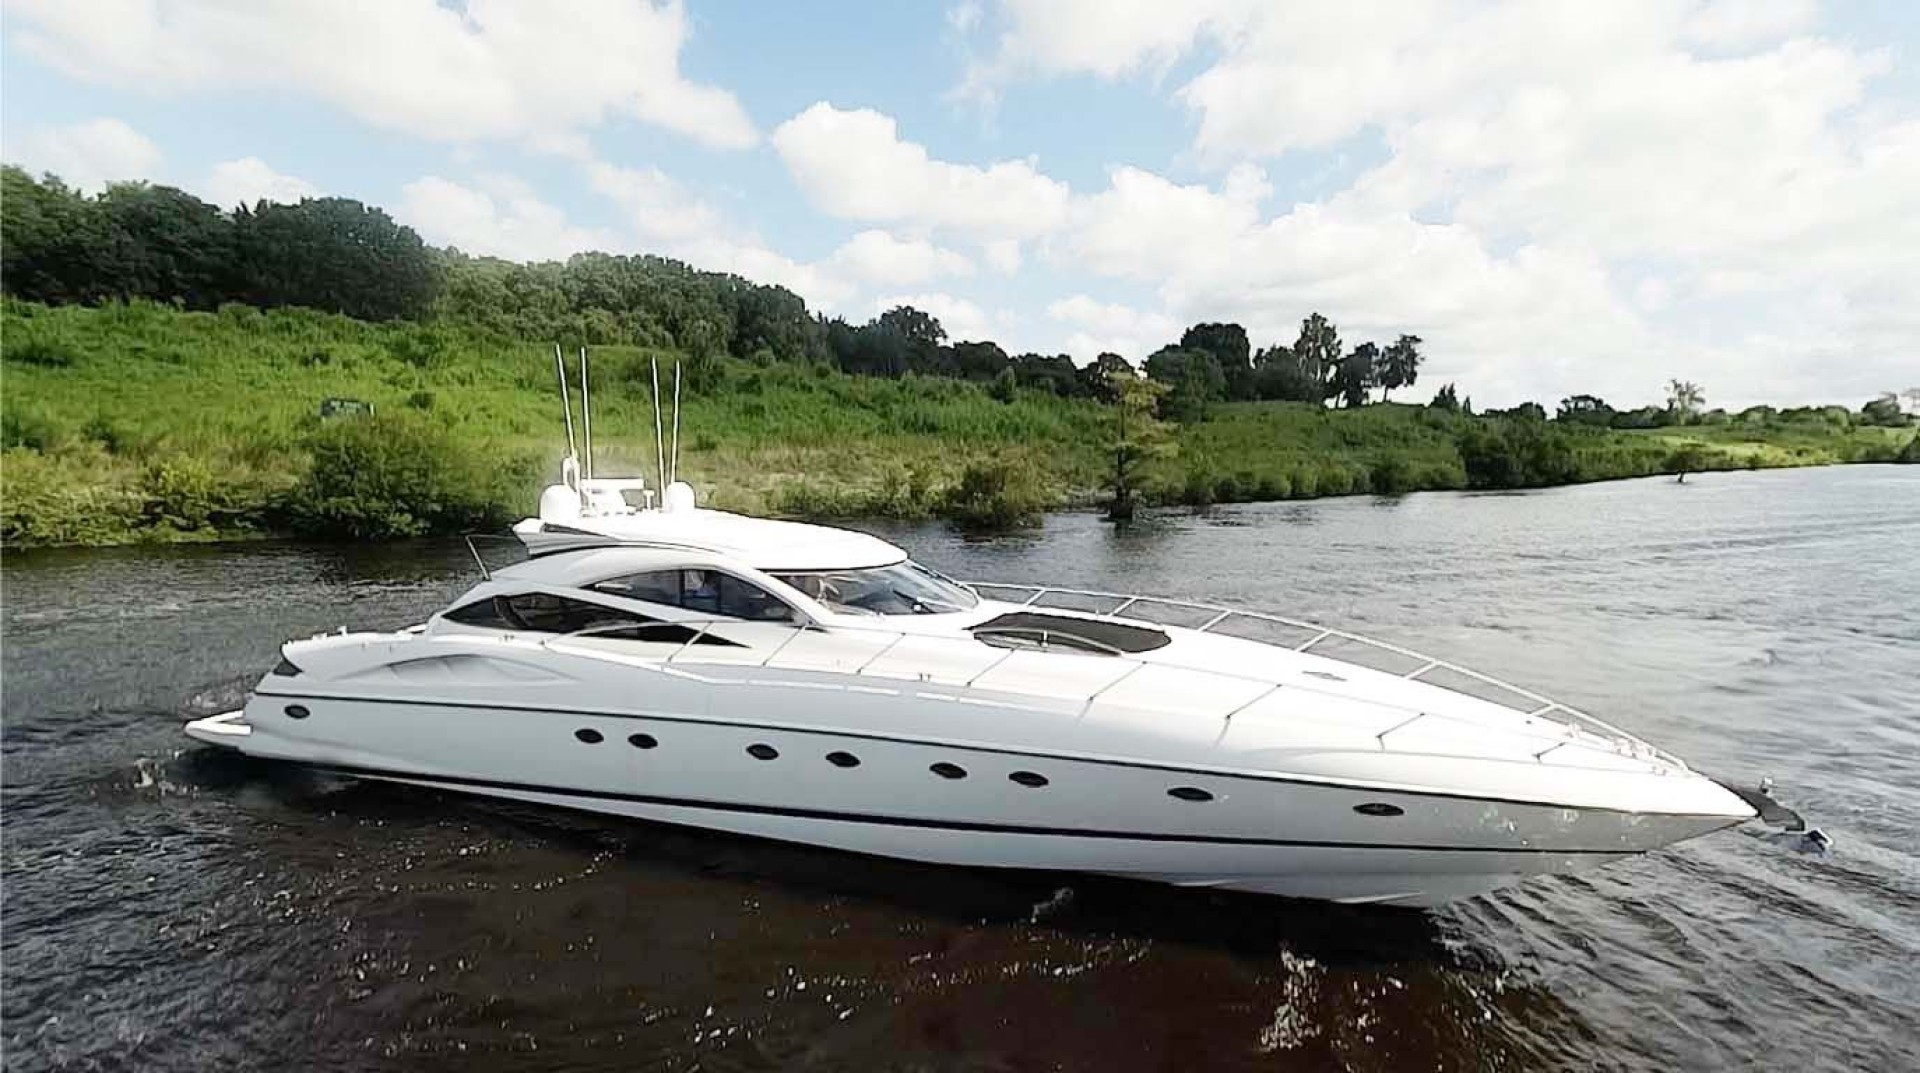 Sunseeker-Predator 2003-Low Profile PALM BEACH-Florida-United States-Main Profile-1576330 | Thumbnail